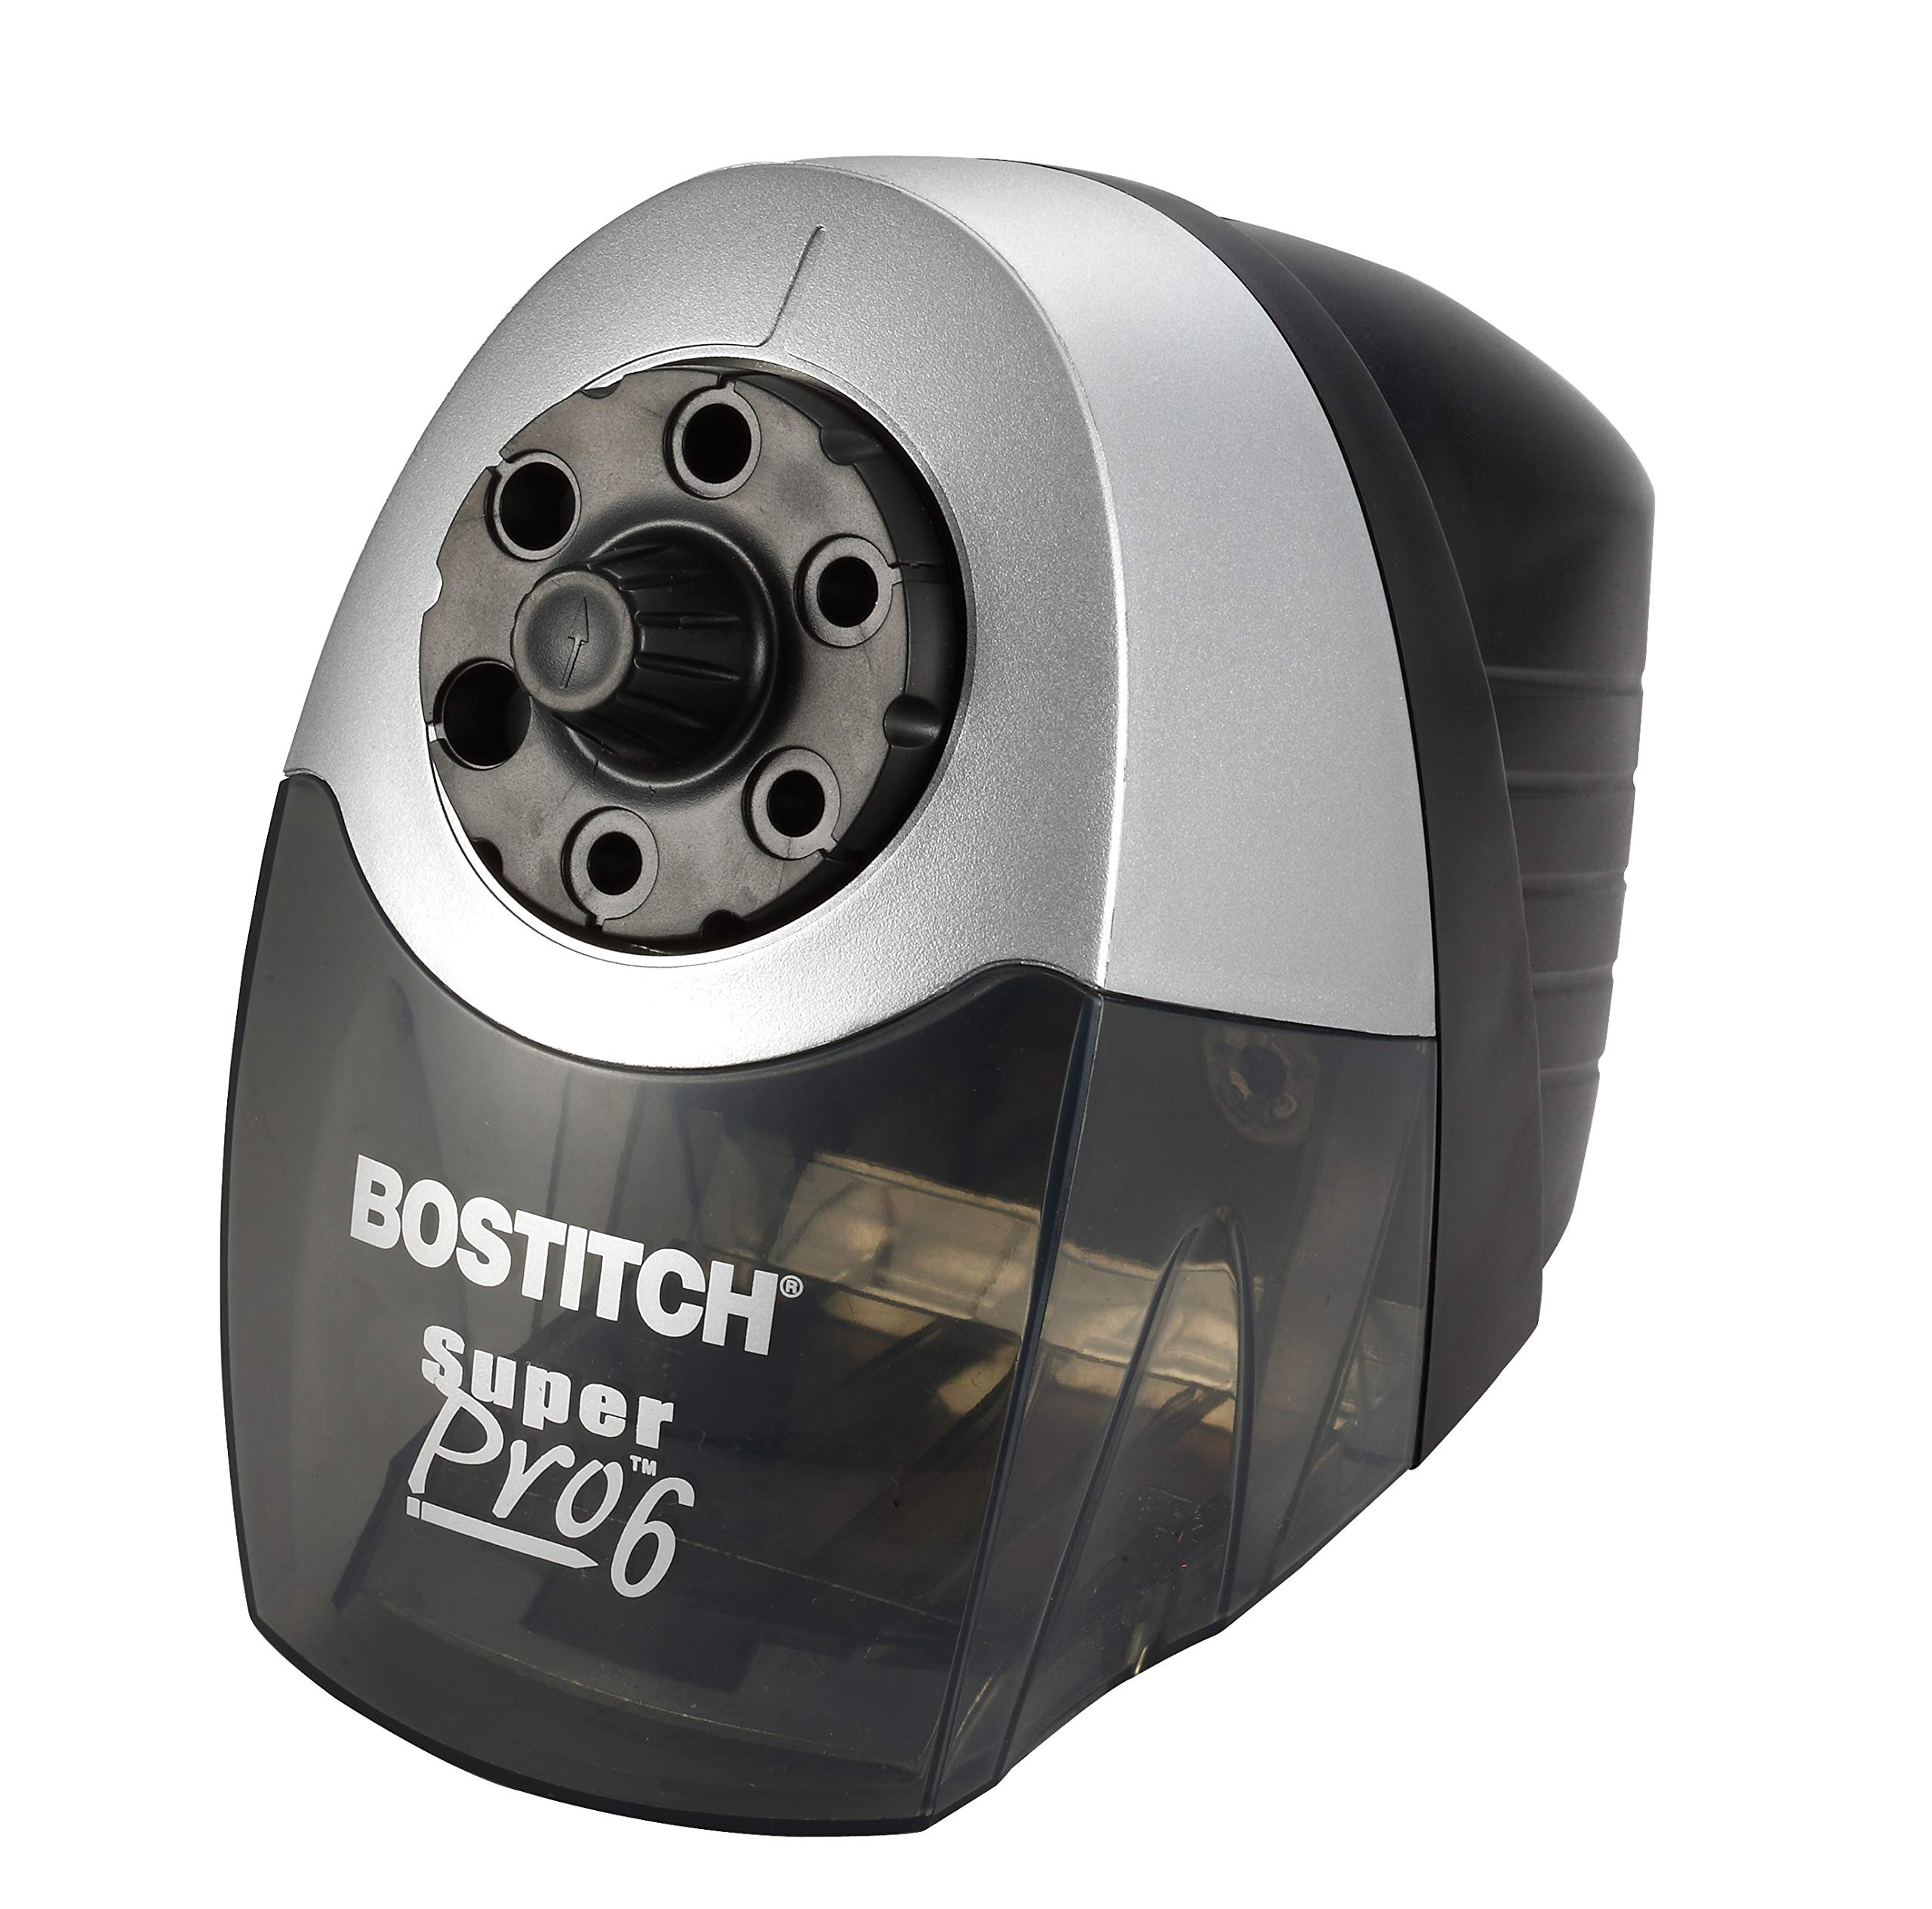 Bostitch SuperPro 6 Extra Heavy Duty Classroom Commercial Electric Pencil Sharpener, 6-Holes, Black/Gray (EPS12HC) by Bostitch Office